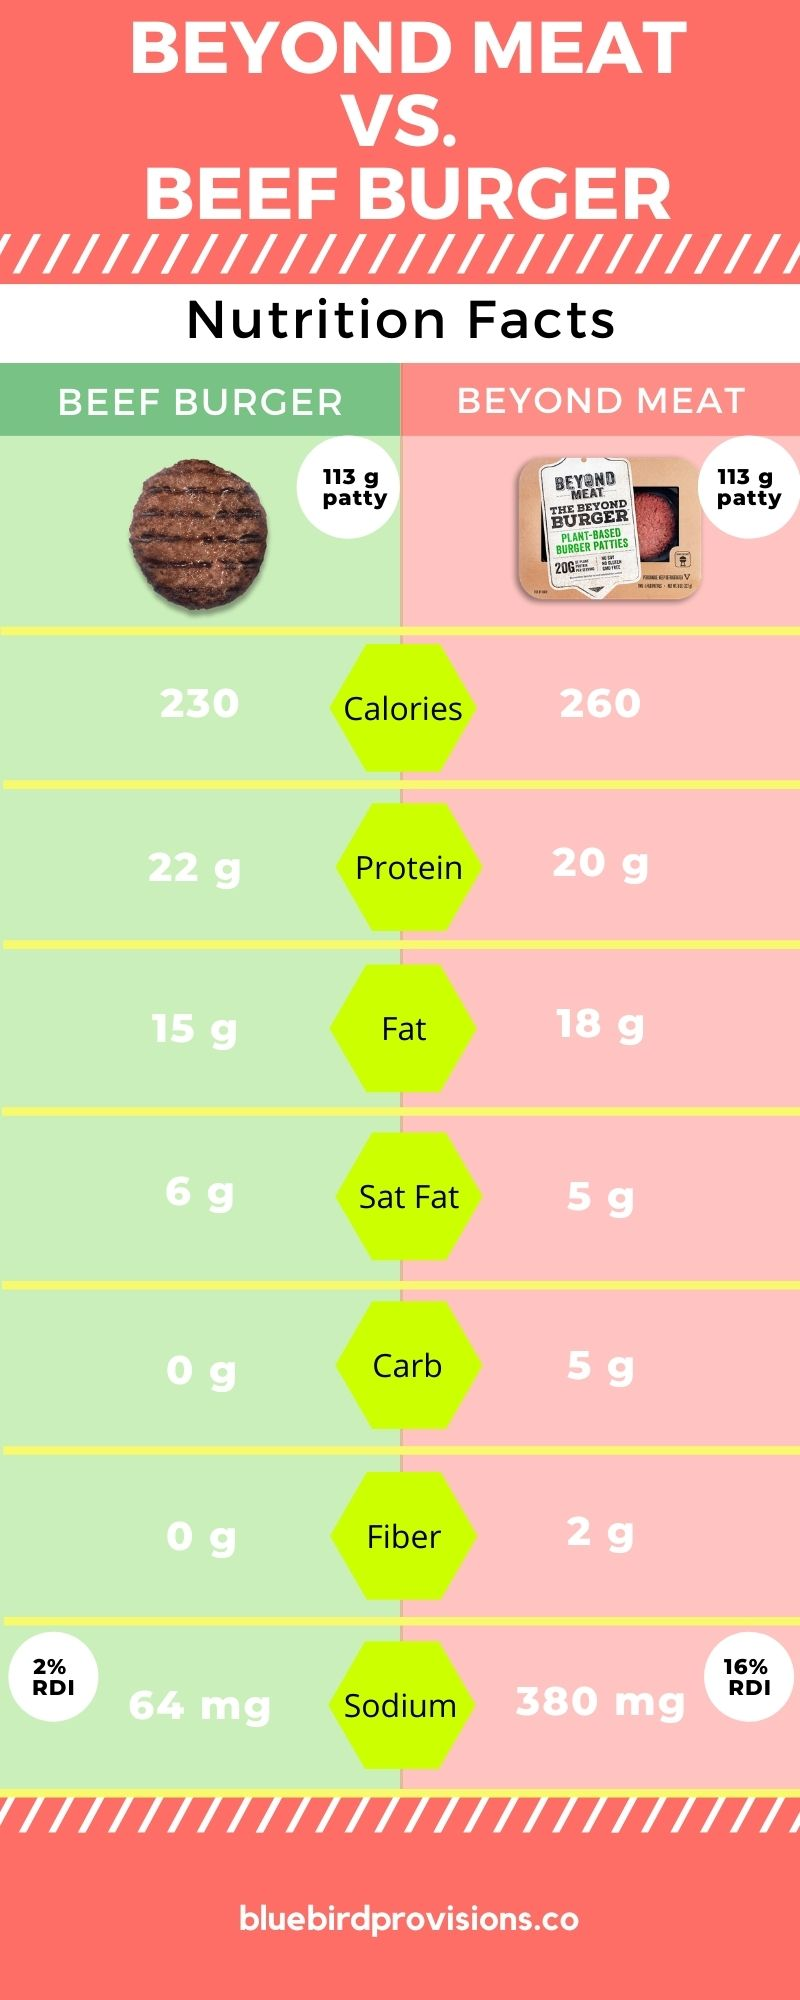 beyond meat vs. beef burger nutrition facts infographic